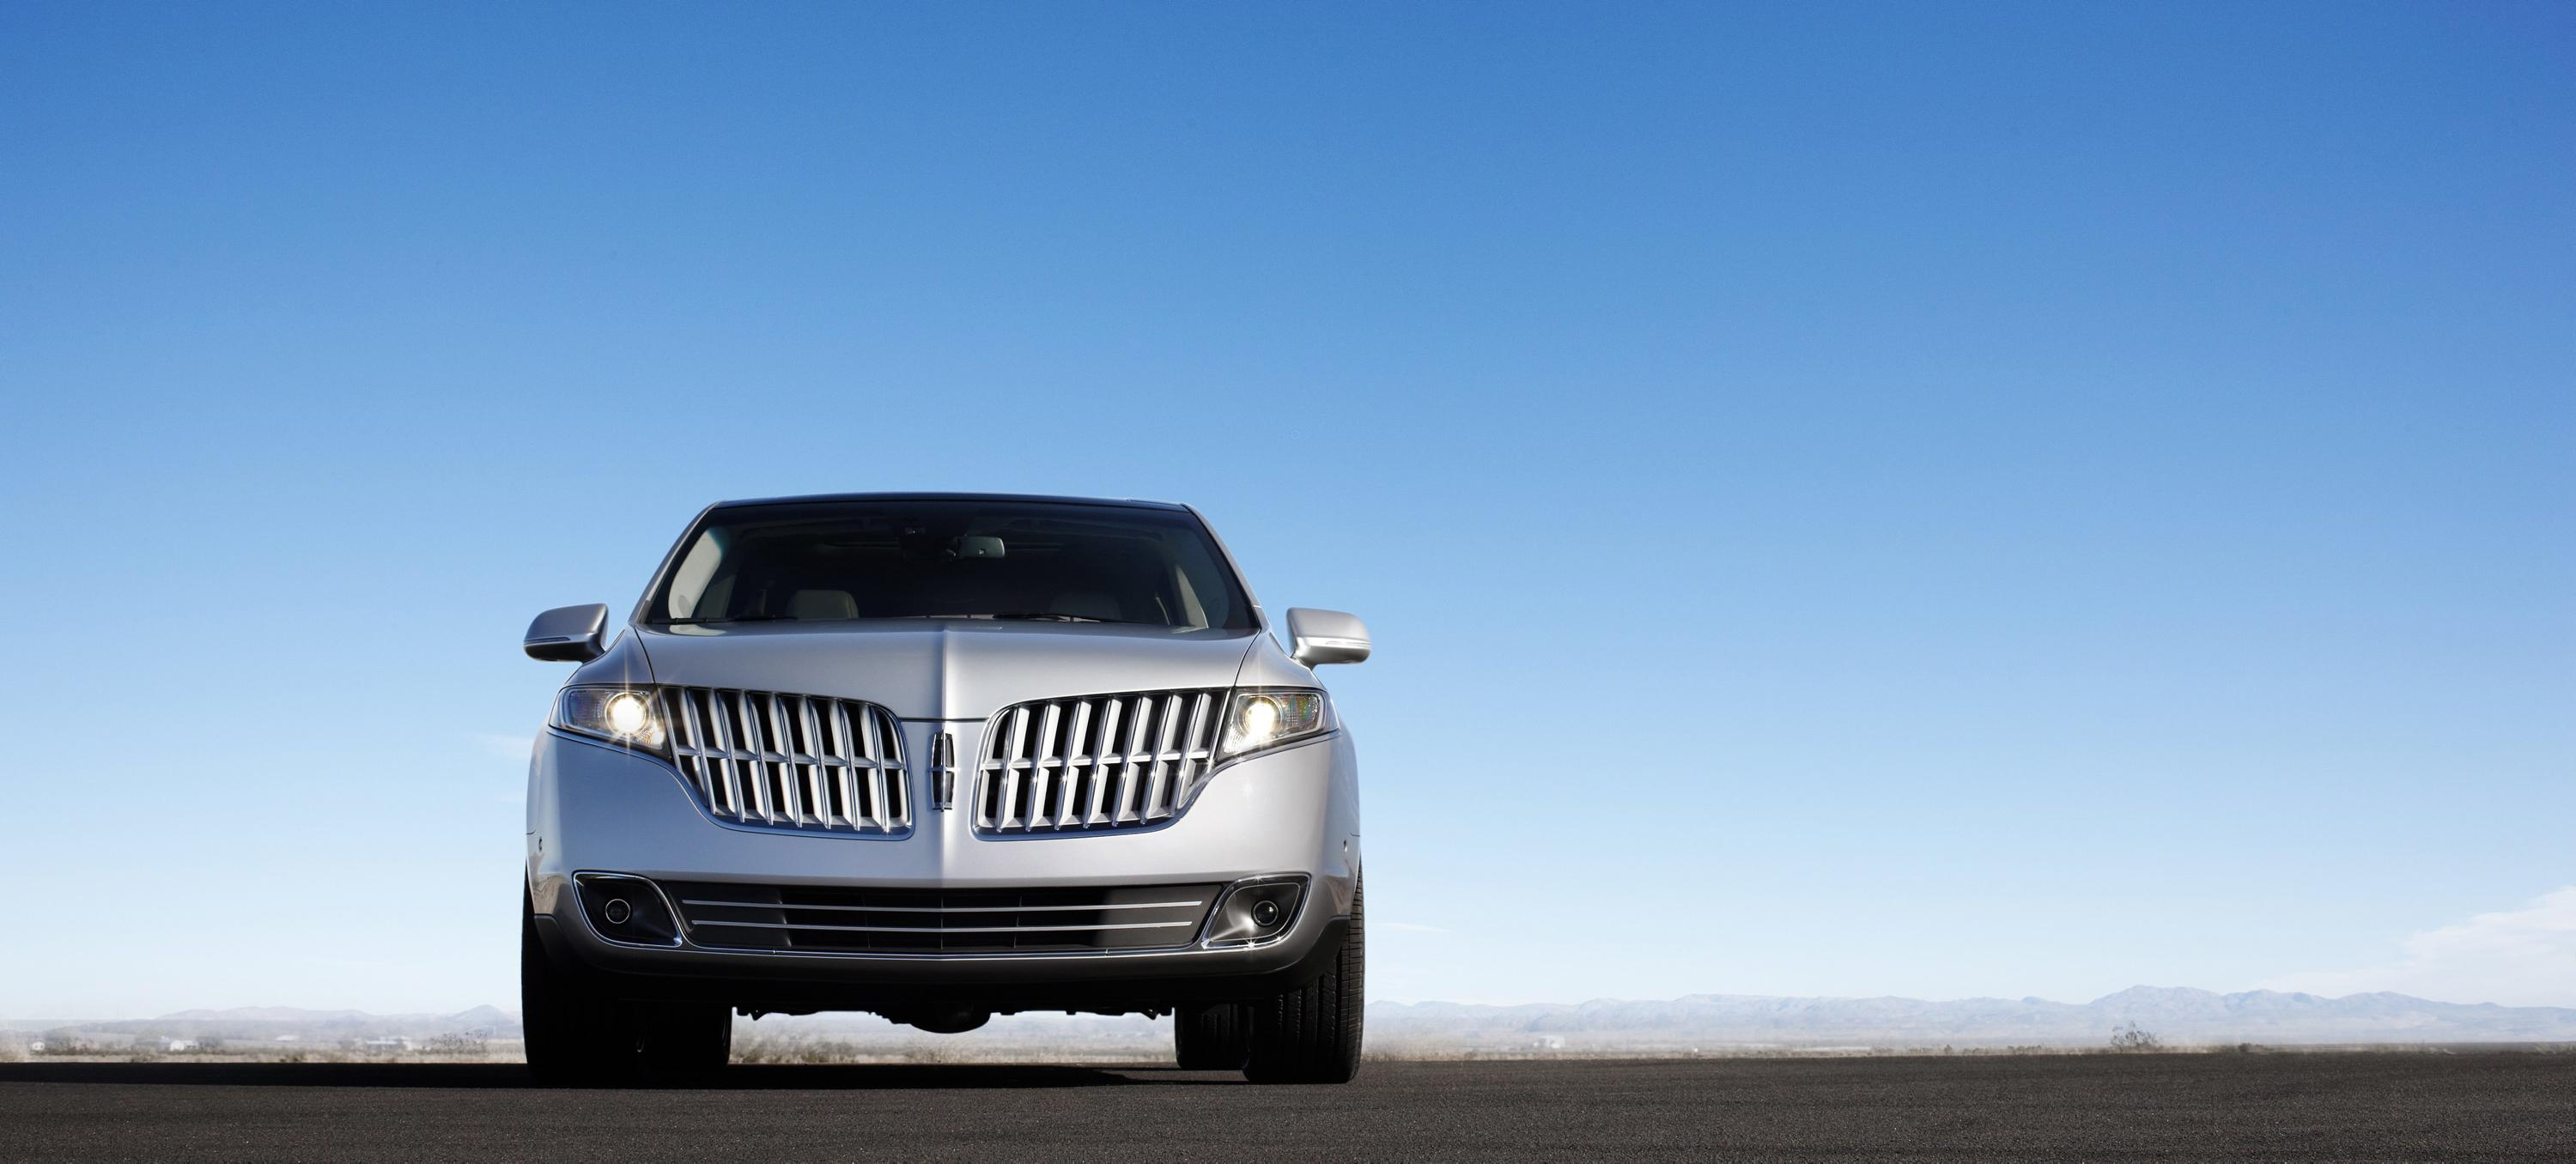 mikano auto inventory at with more sale lincoln navigation available mkt dual loaded for s and camera dvd